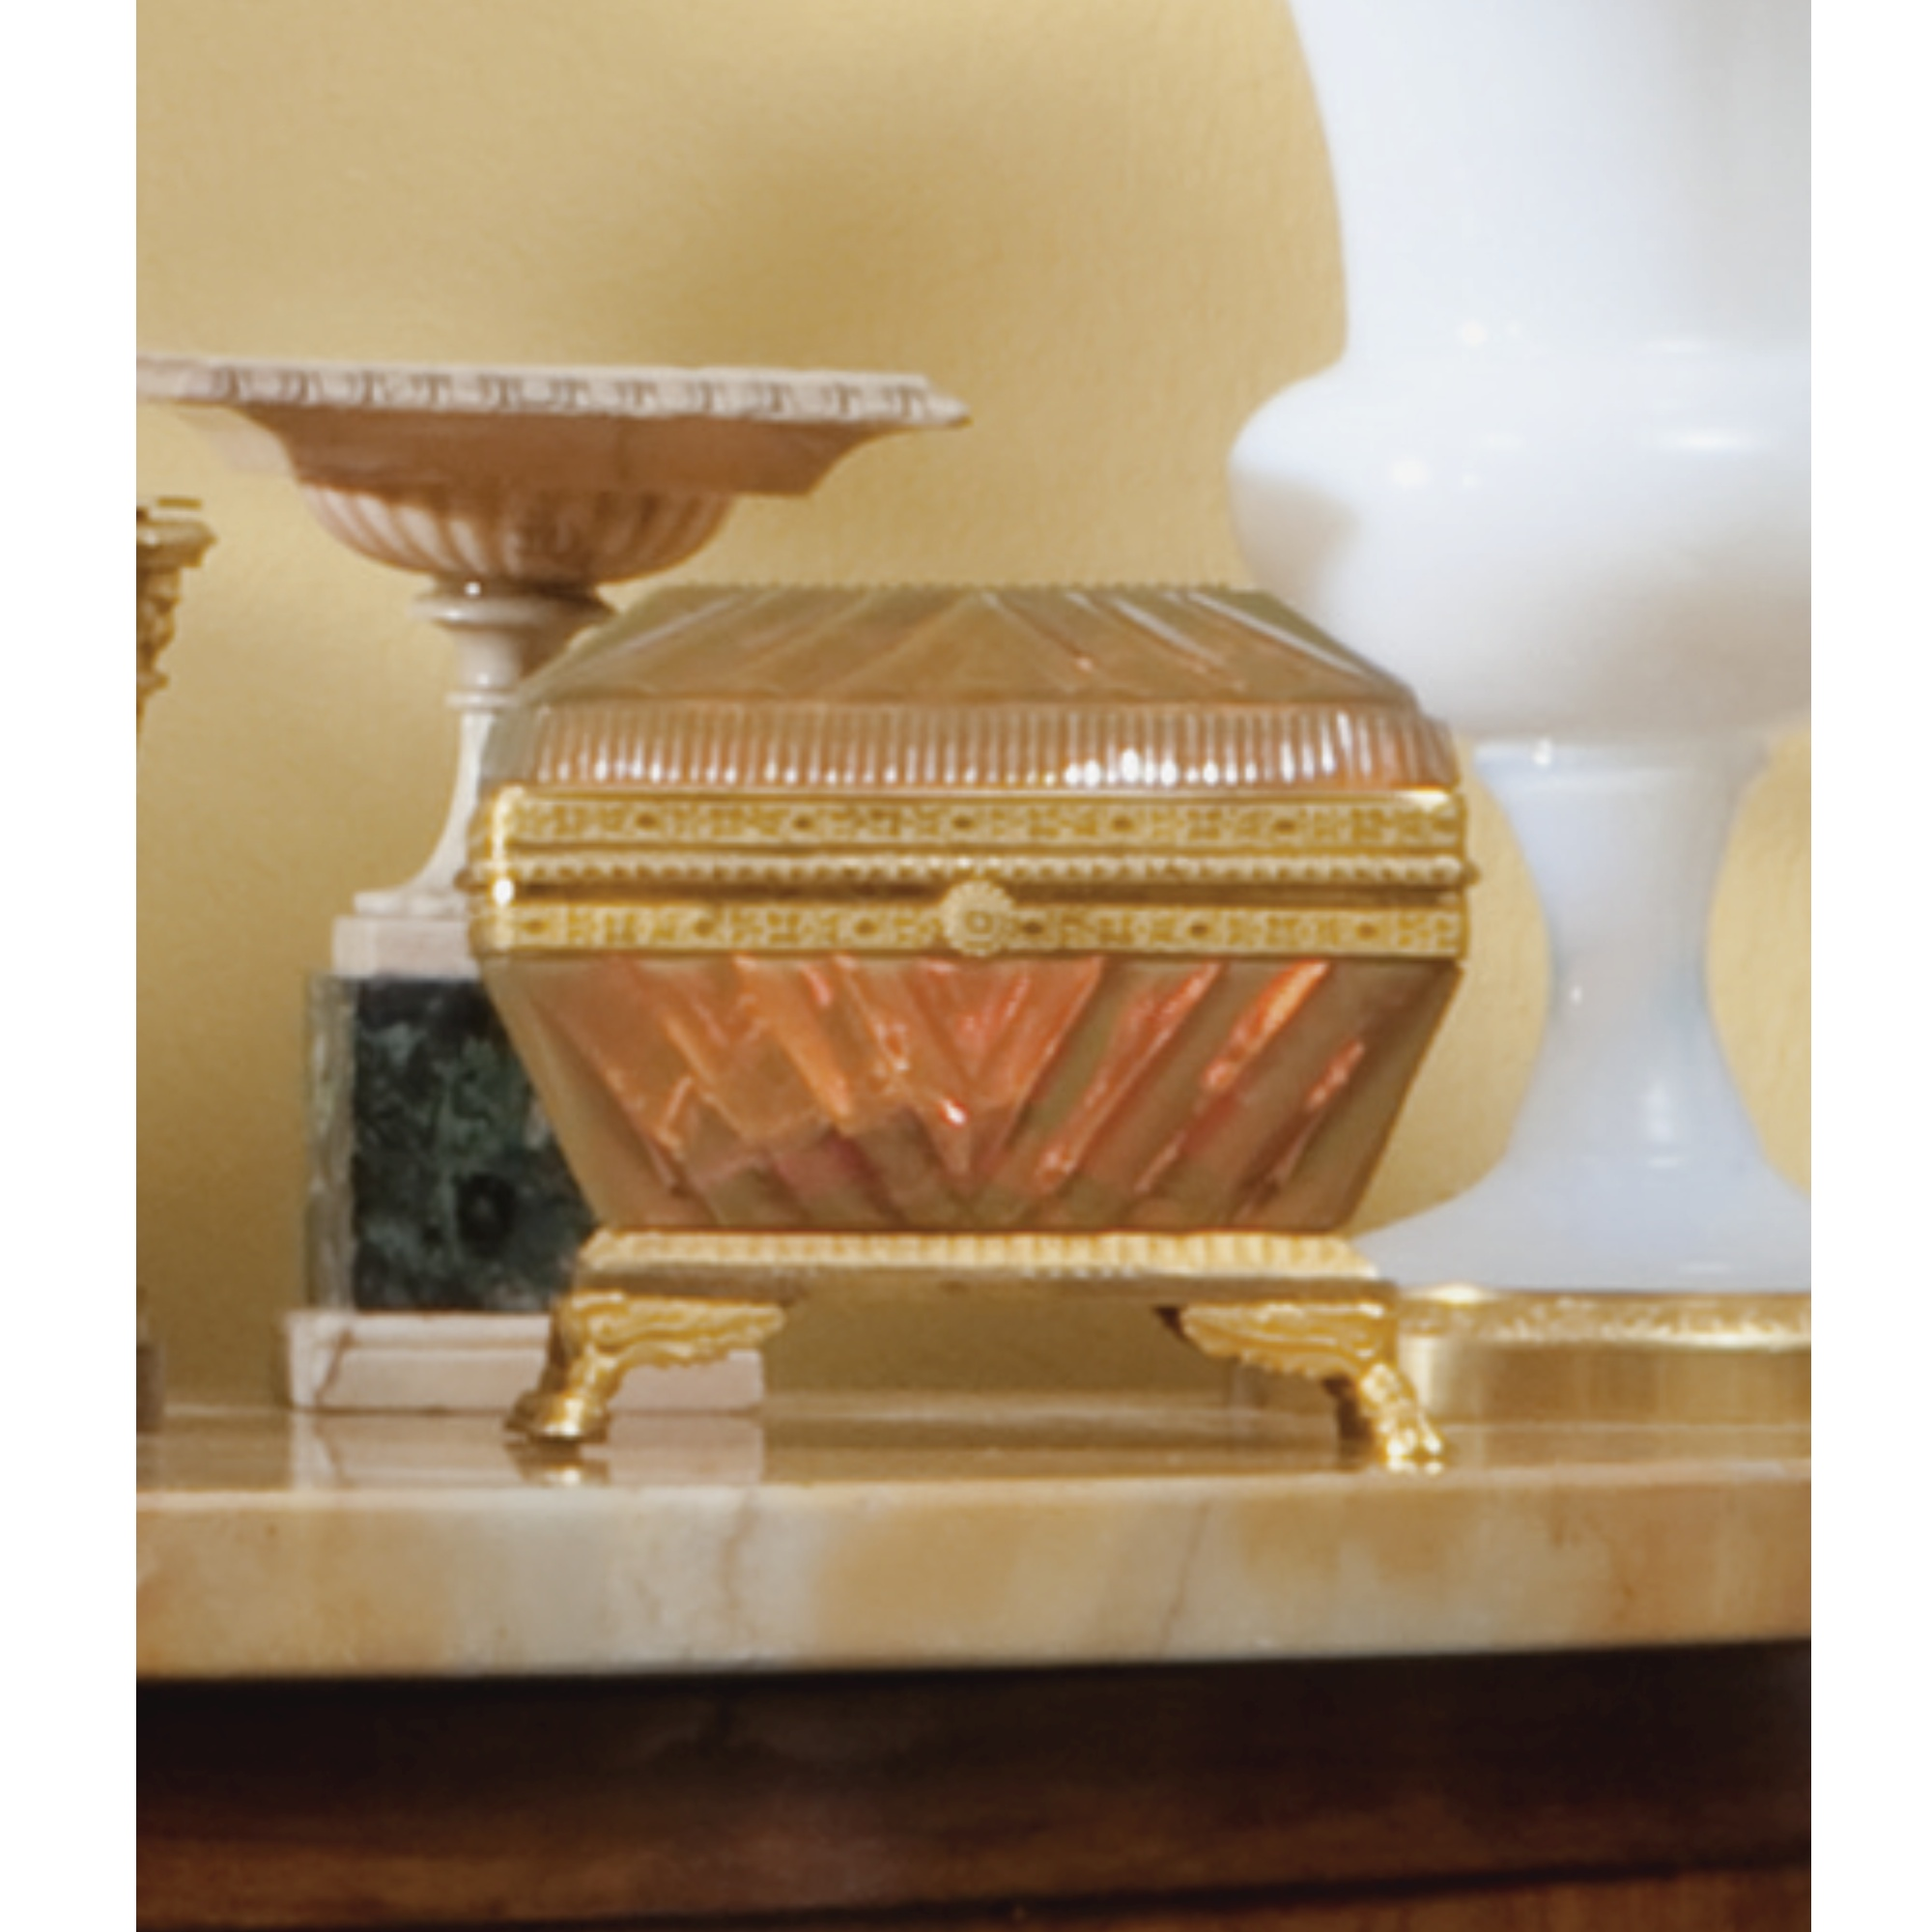 Two gilt-bronze-mounted cut-glass caskets